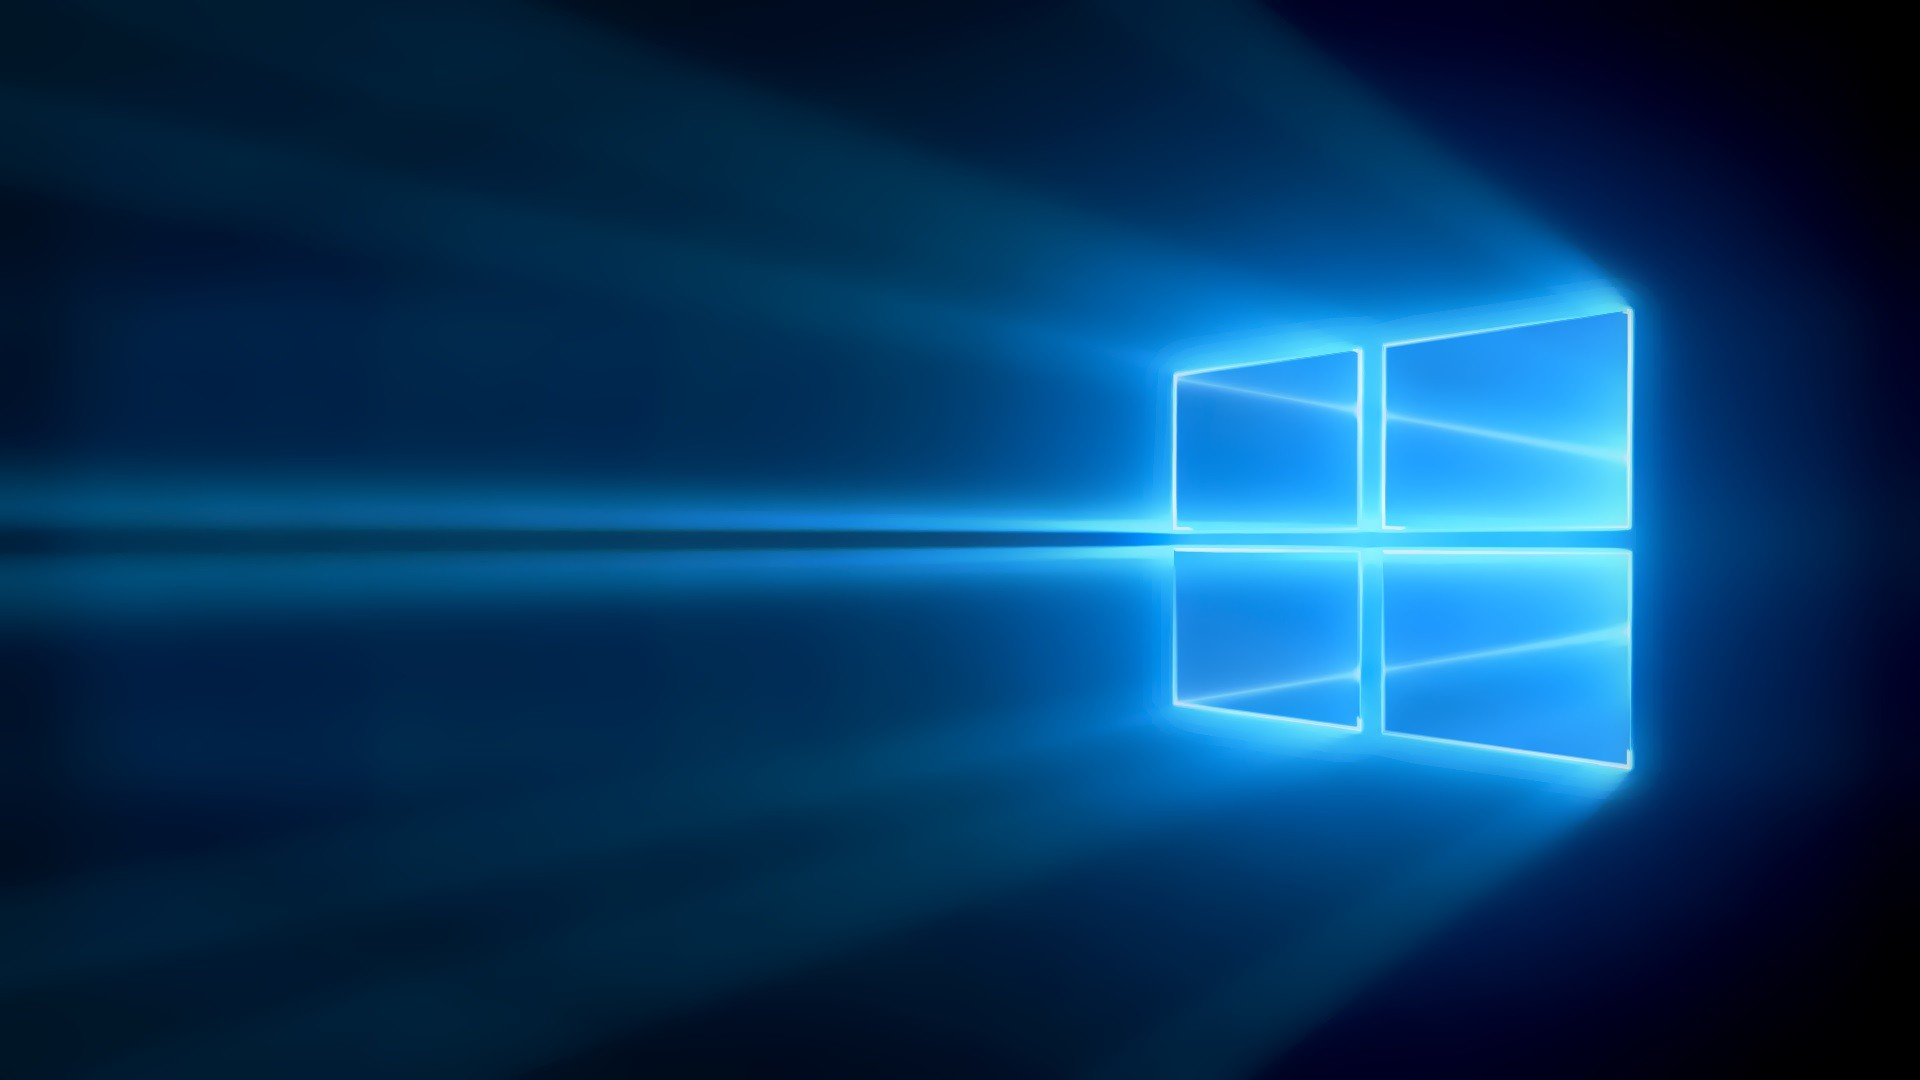 Windows 10 Threshold 2 Isos Now Available For Enterprise Users